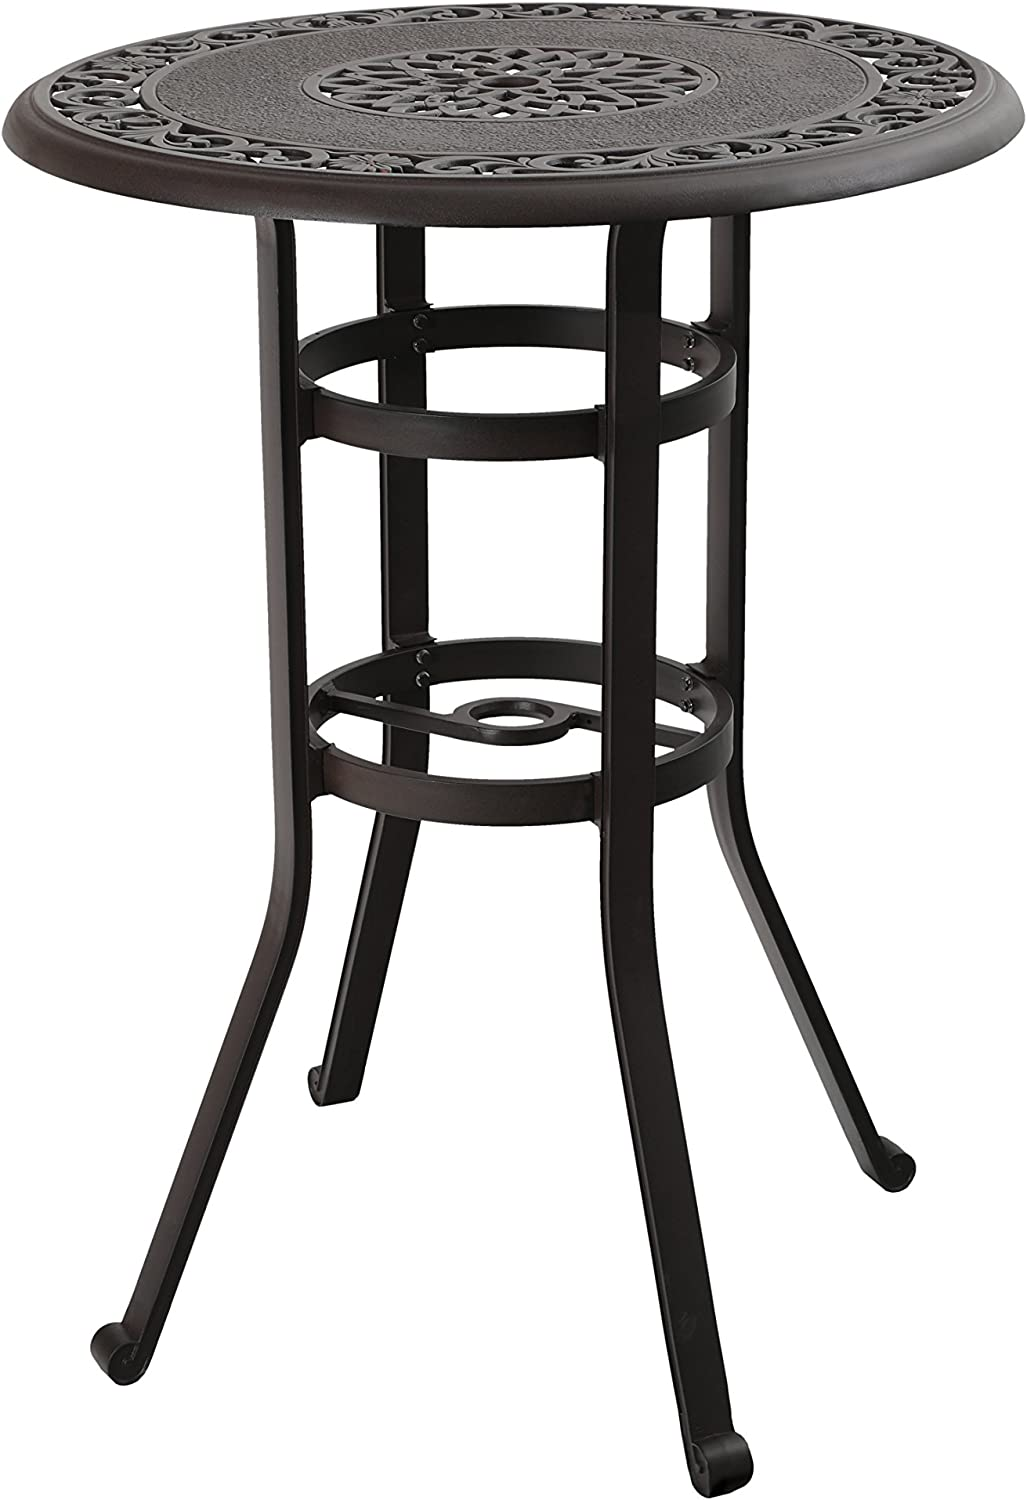 "PHI VILLA 32"" Cast Aluminum Pub Height Bistro Round Table for Oudoor Paito - 41"" Height: Kitchen & Dining"